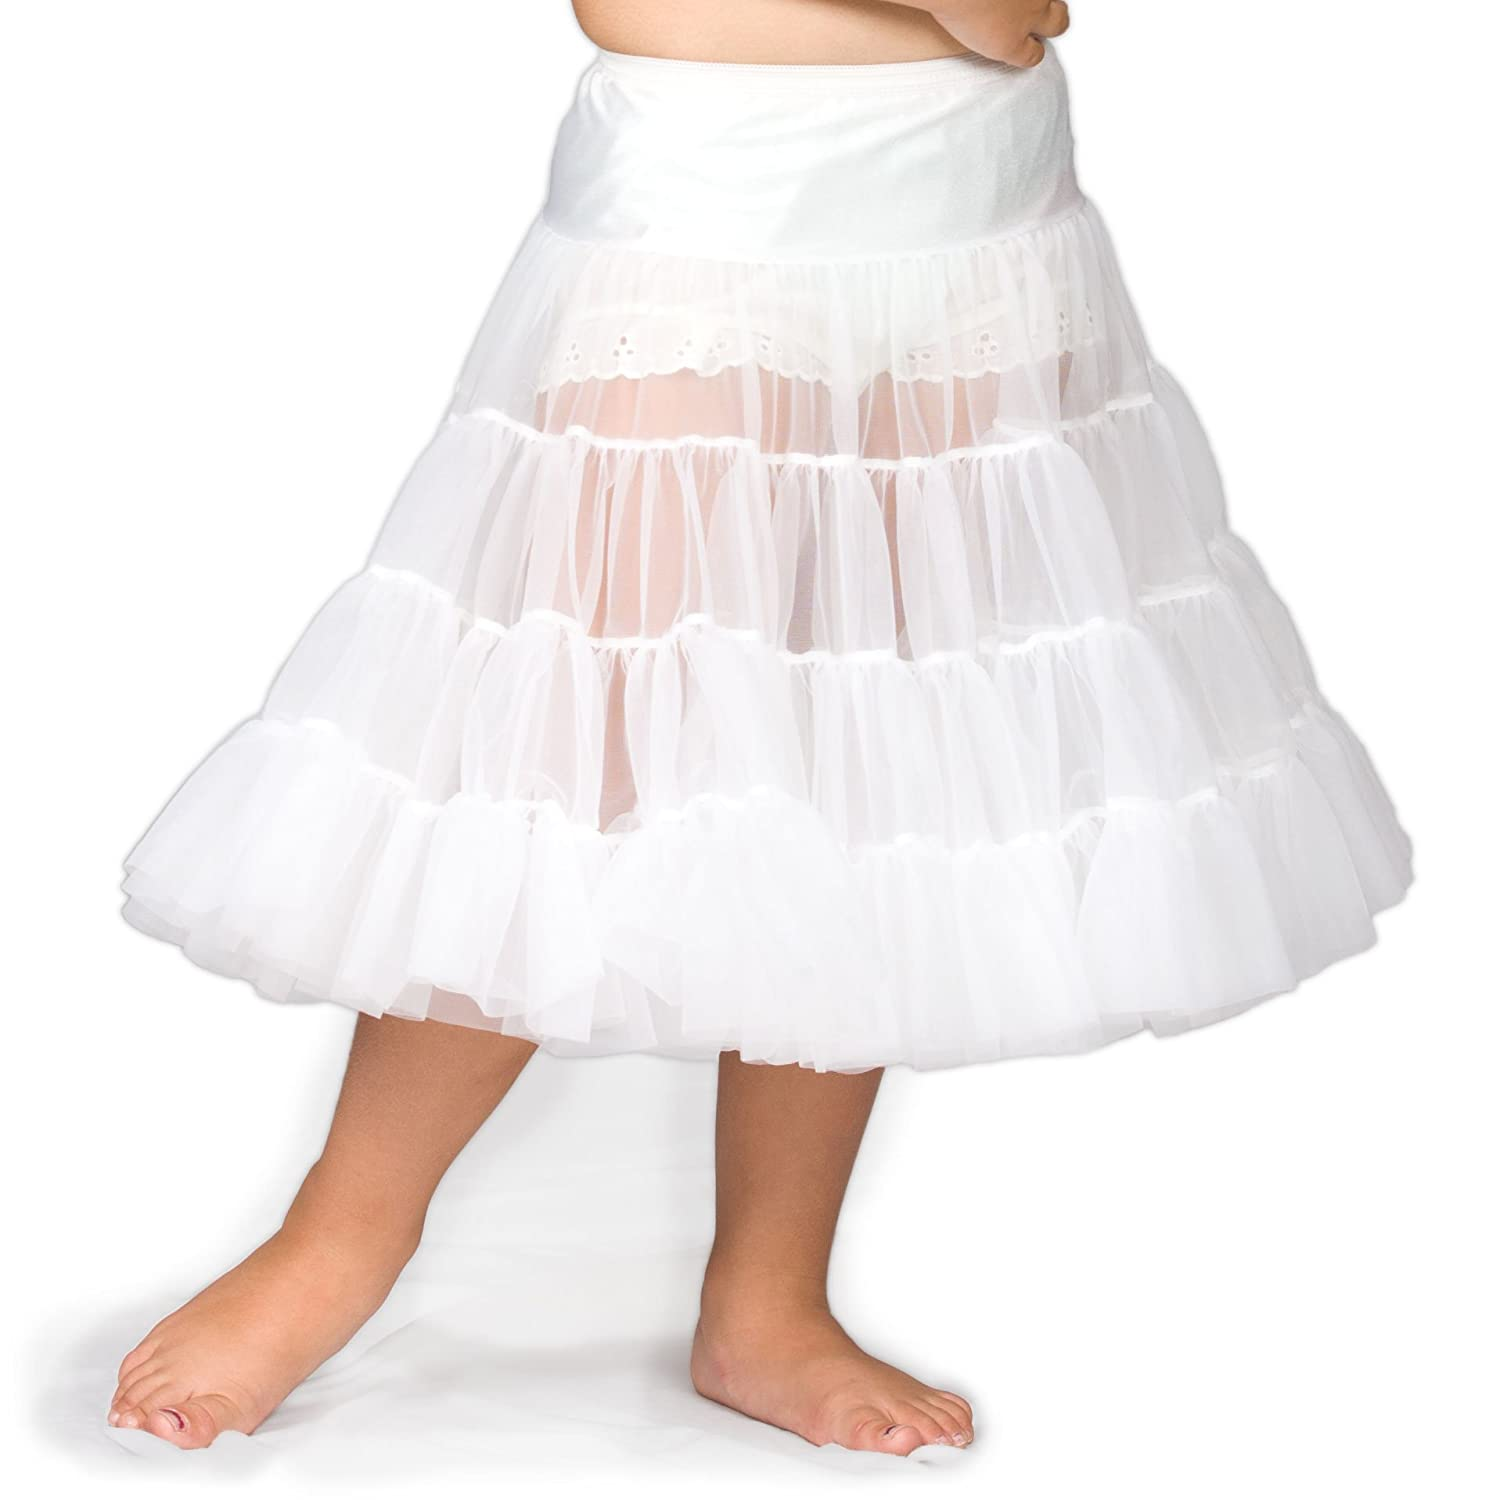 I.C. Collections Little Girls White Bouffant Half Slip Petticoat Tea Length New ICM 000505-WHB-Can